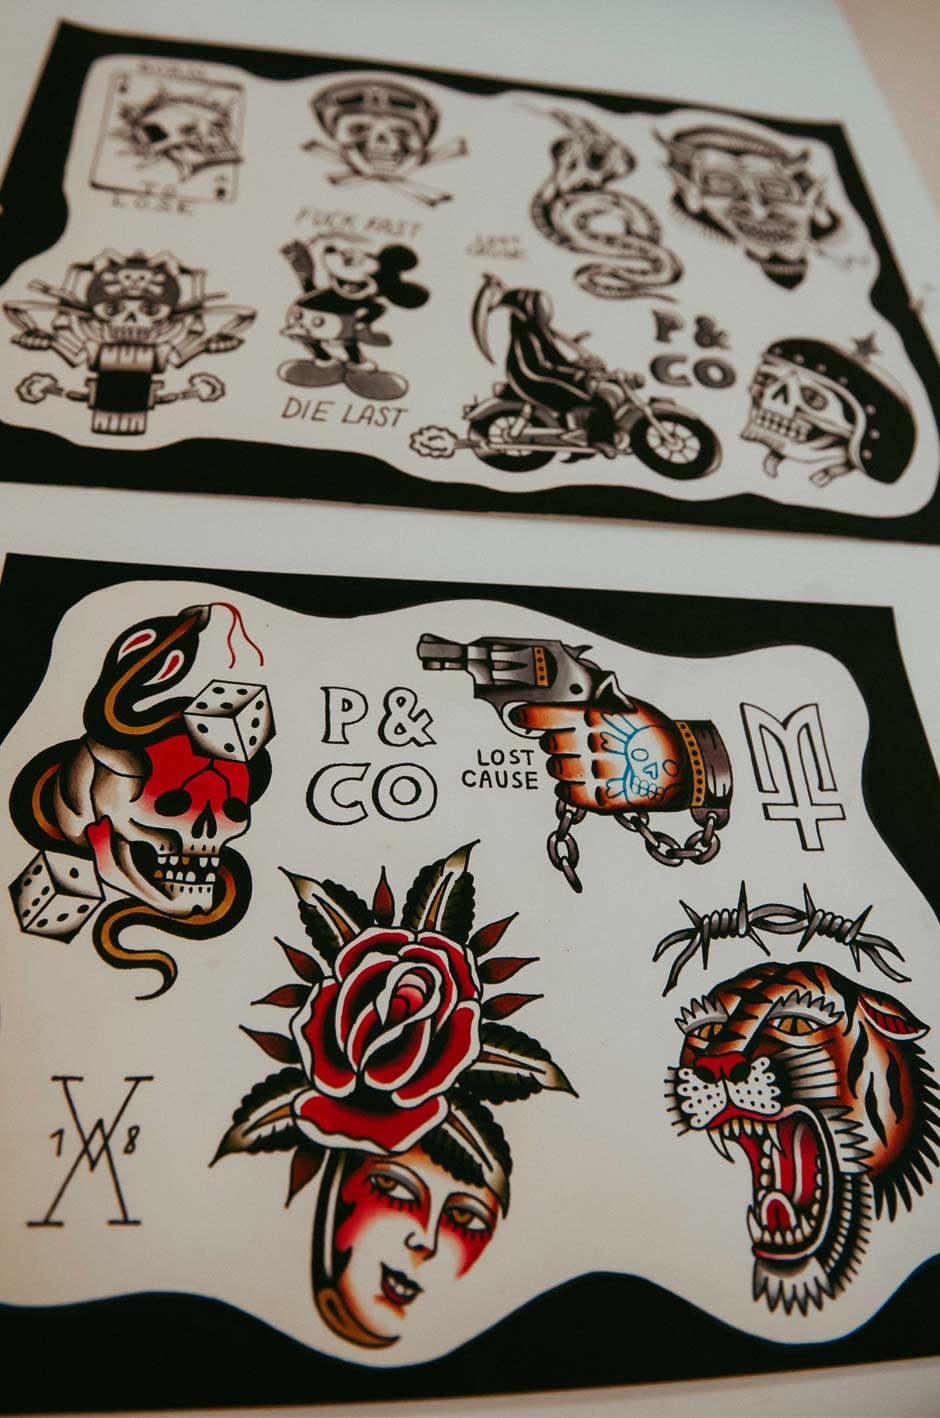 Provisions & Co (P&Co) - Le Mausolee lost cause flash tattoo tour